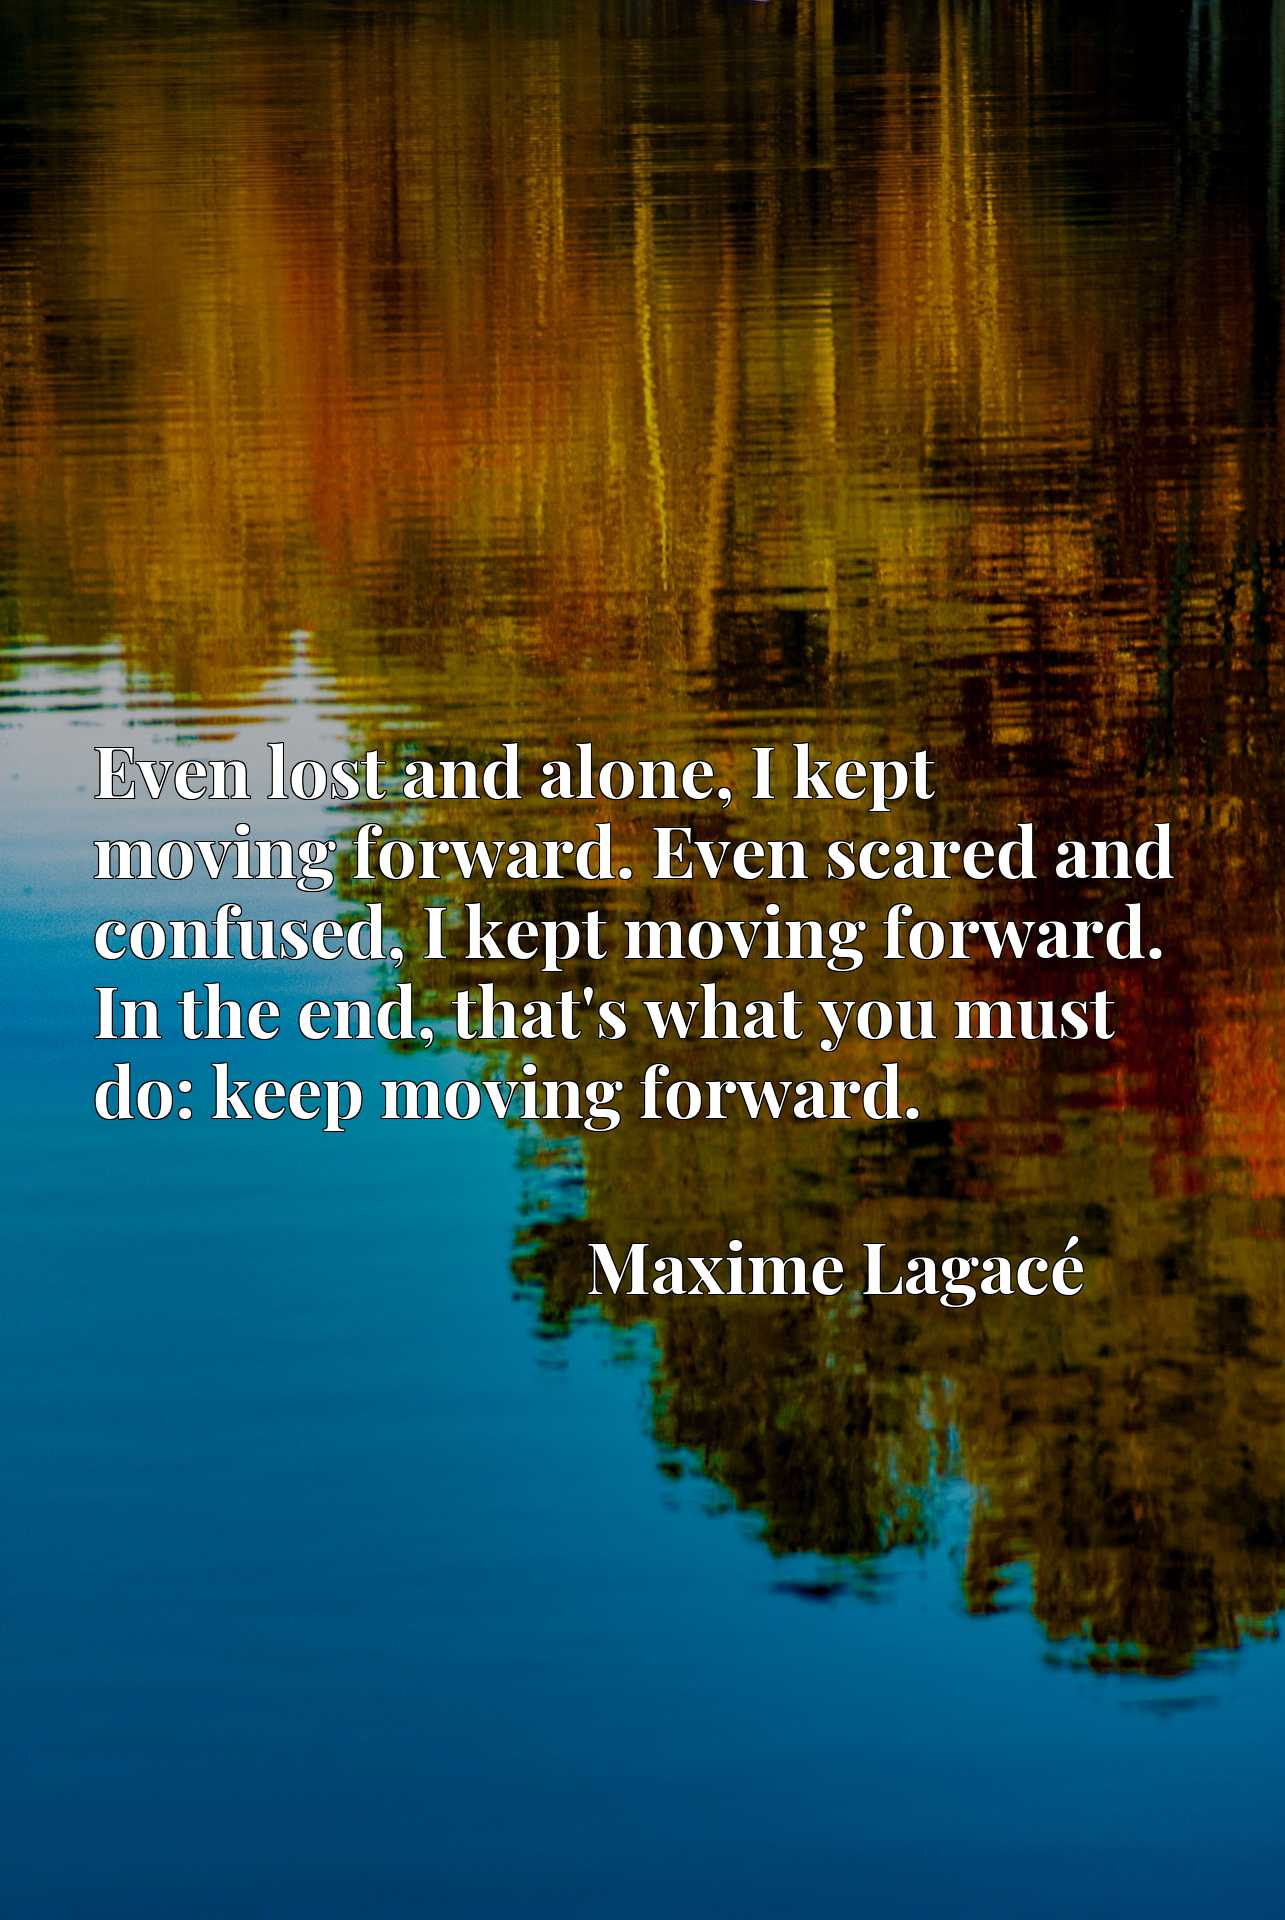 Even lost and alone, I kept moving forward. Even scared and confused, I kept moving forward. In the end, that's what you must do: keep moving forward.